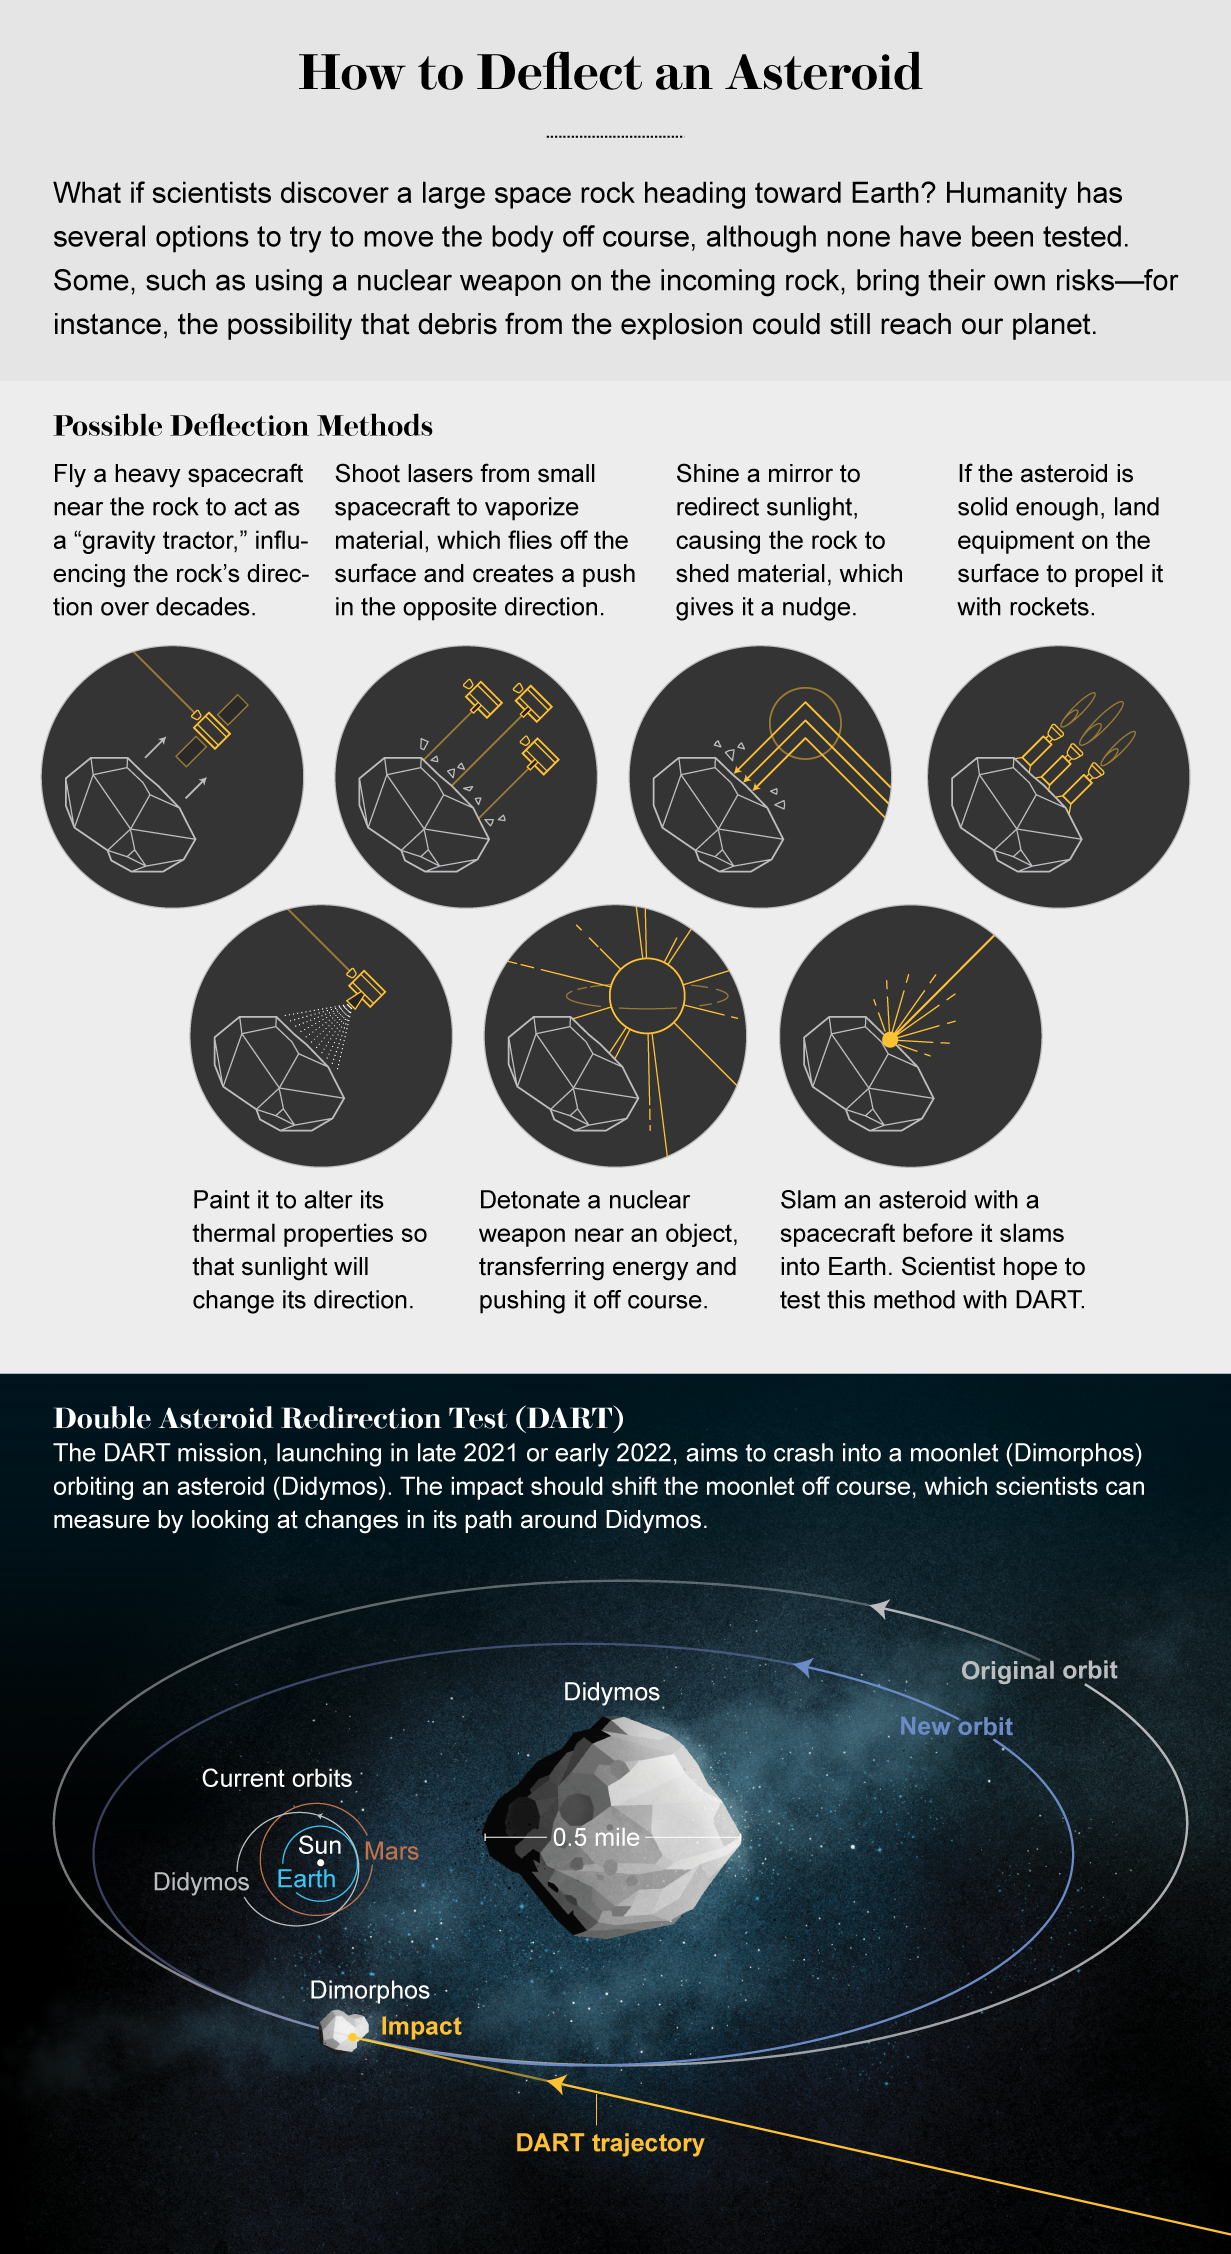 Graphic shows ways to deflect an asteroid and explains how the Double Asteroid Redirection Test (DART) mission will work.